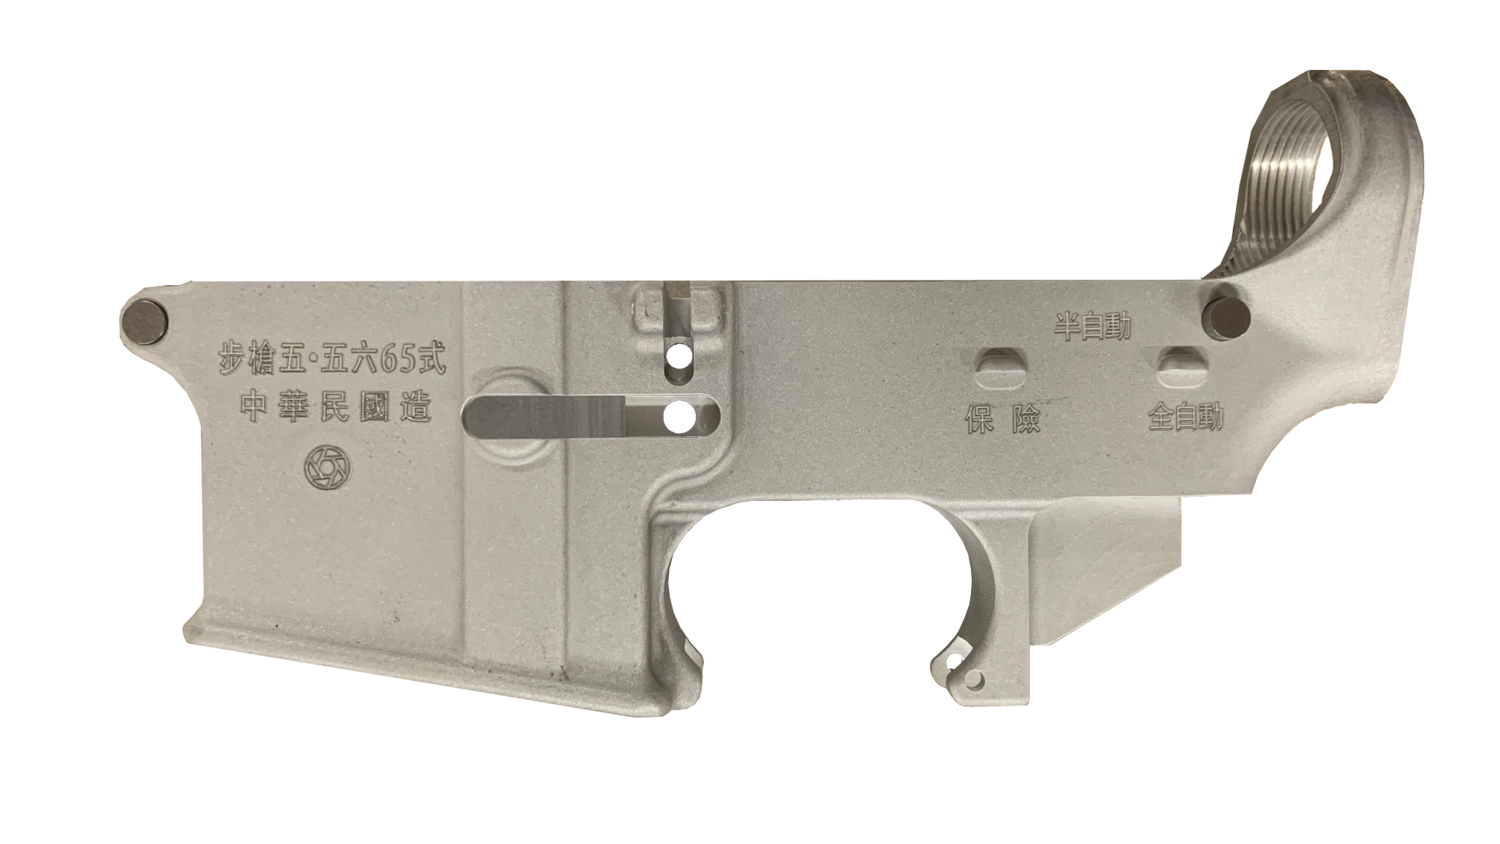 T65 marking A2 style 80% lower receiver